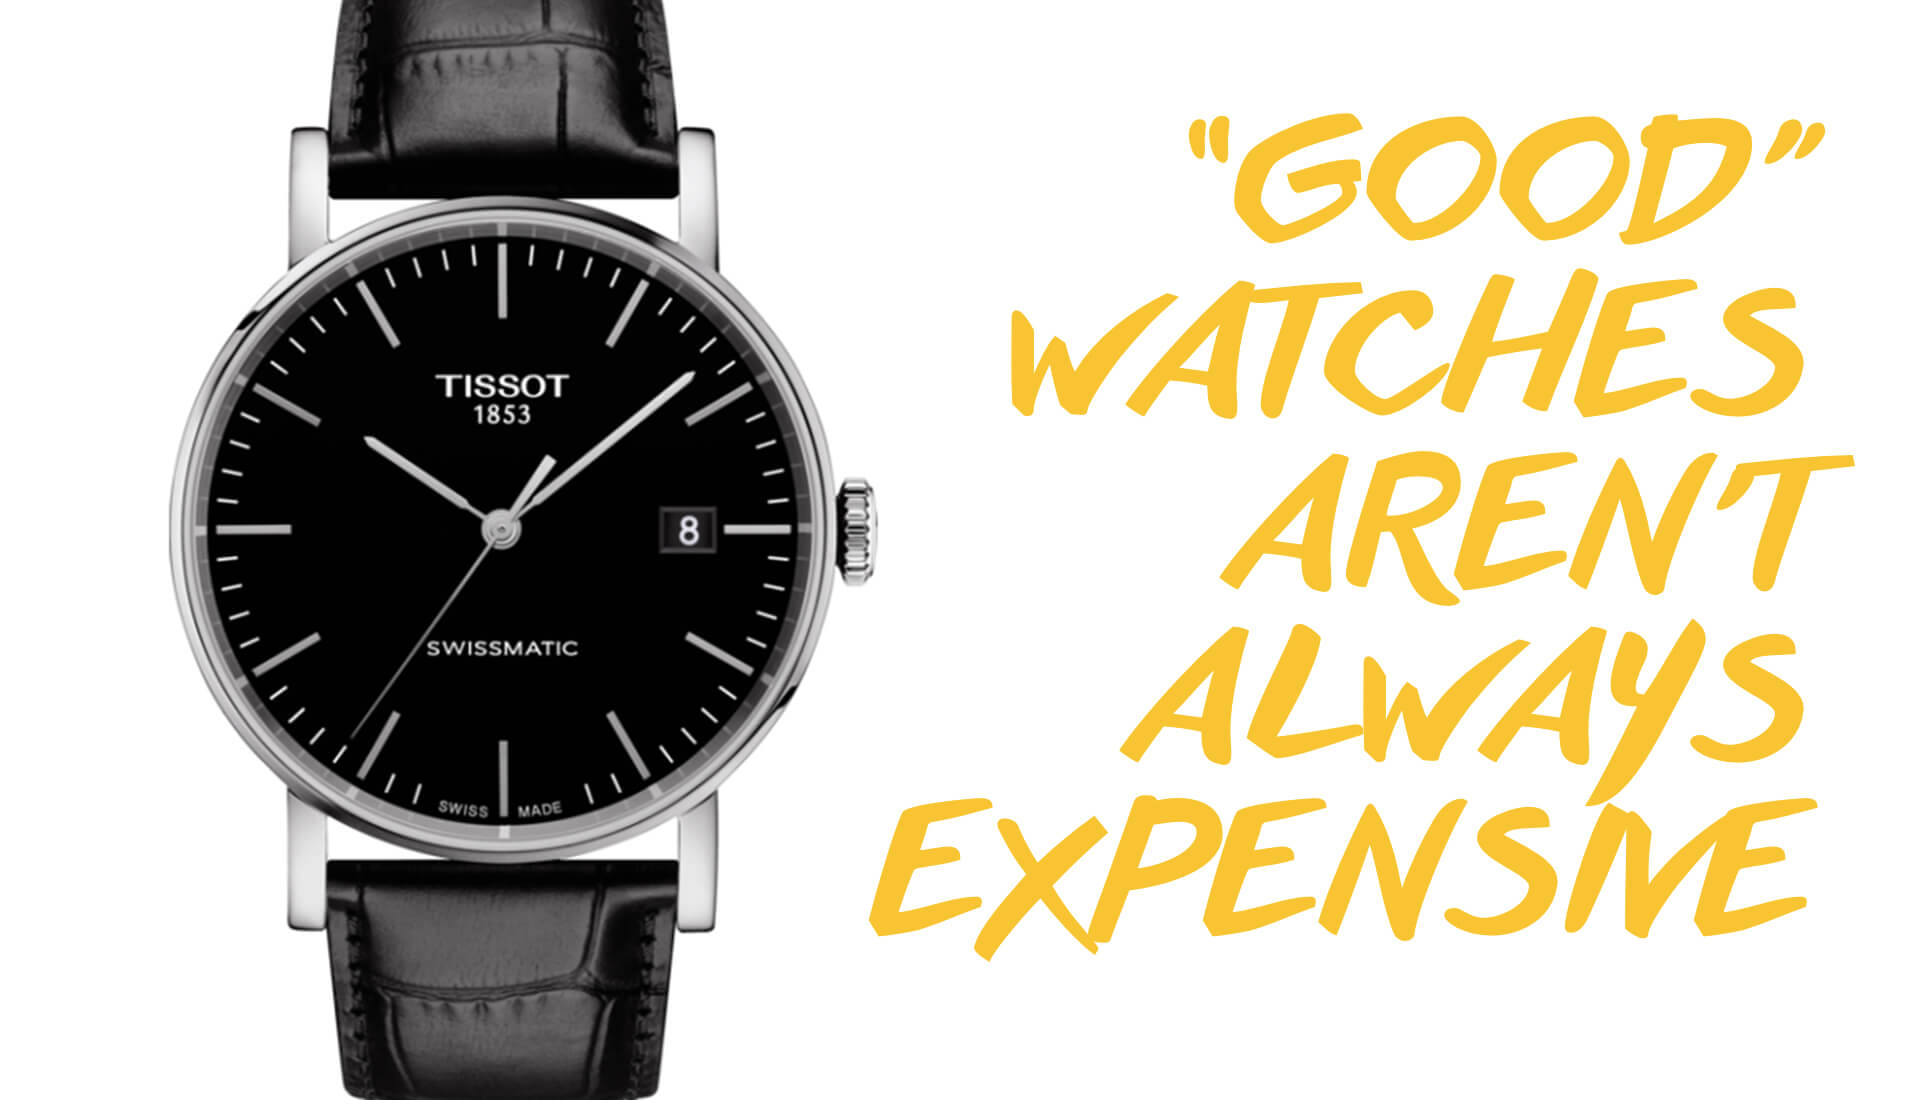 Watch 101: Is There Value in Watches Under $500?